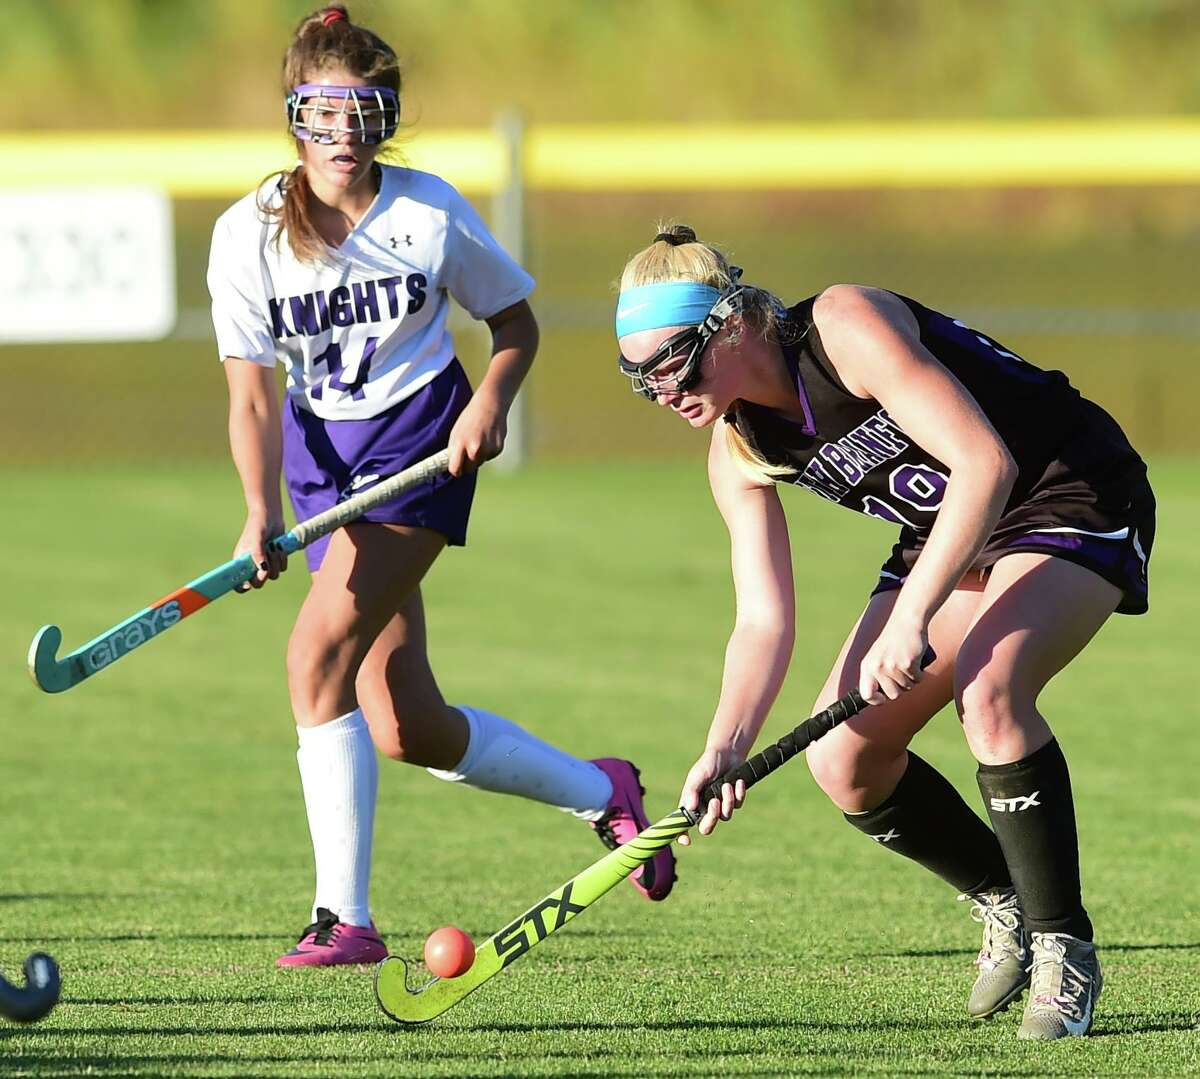 North Branford played to a 2-2 tie with Westbrook on Oct. 23.